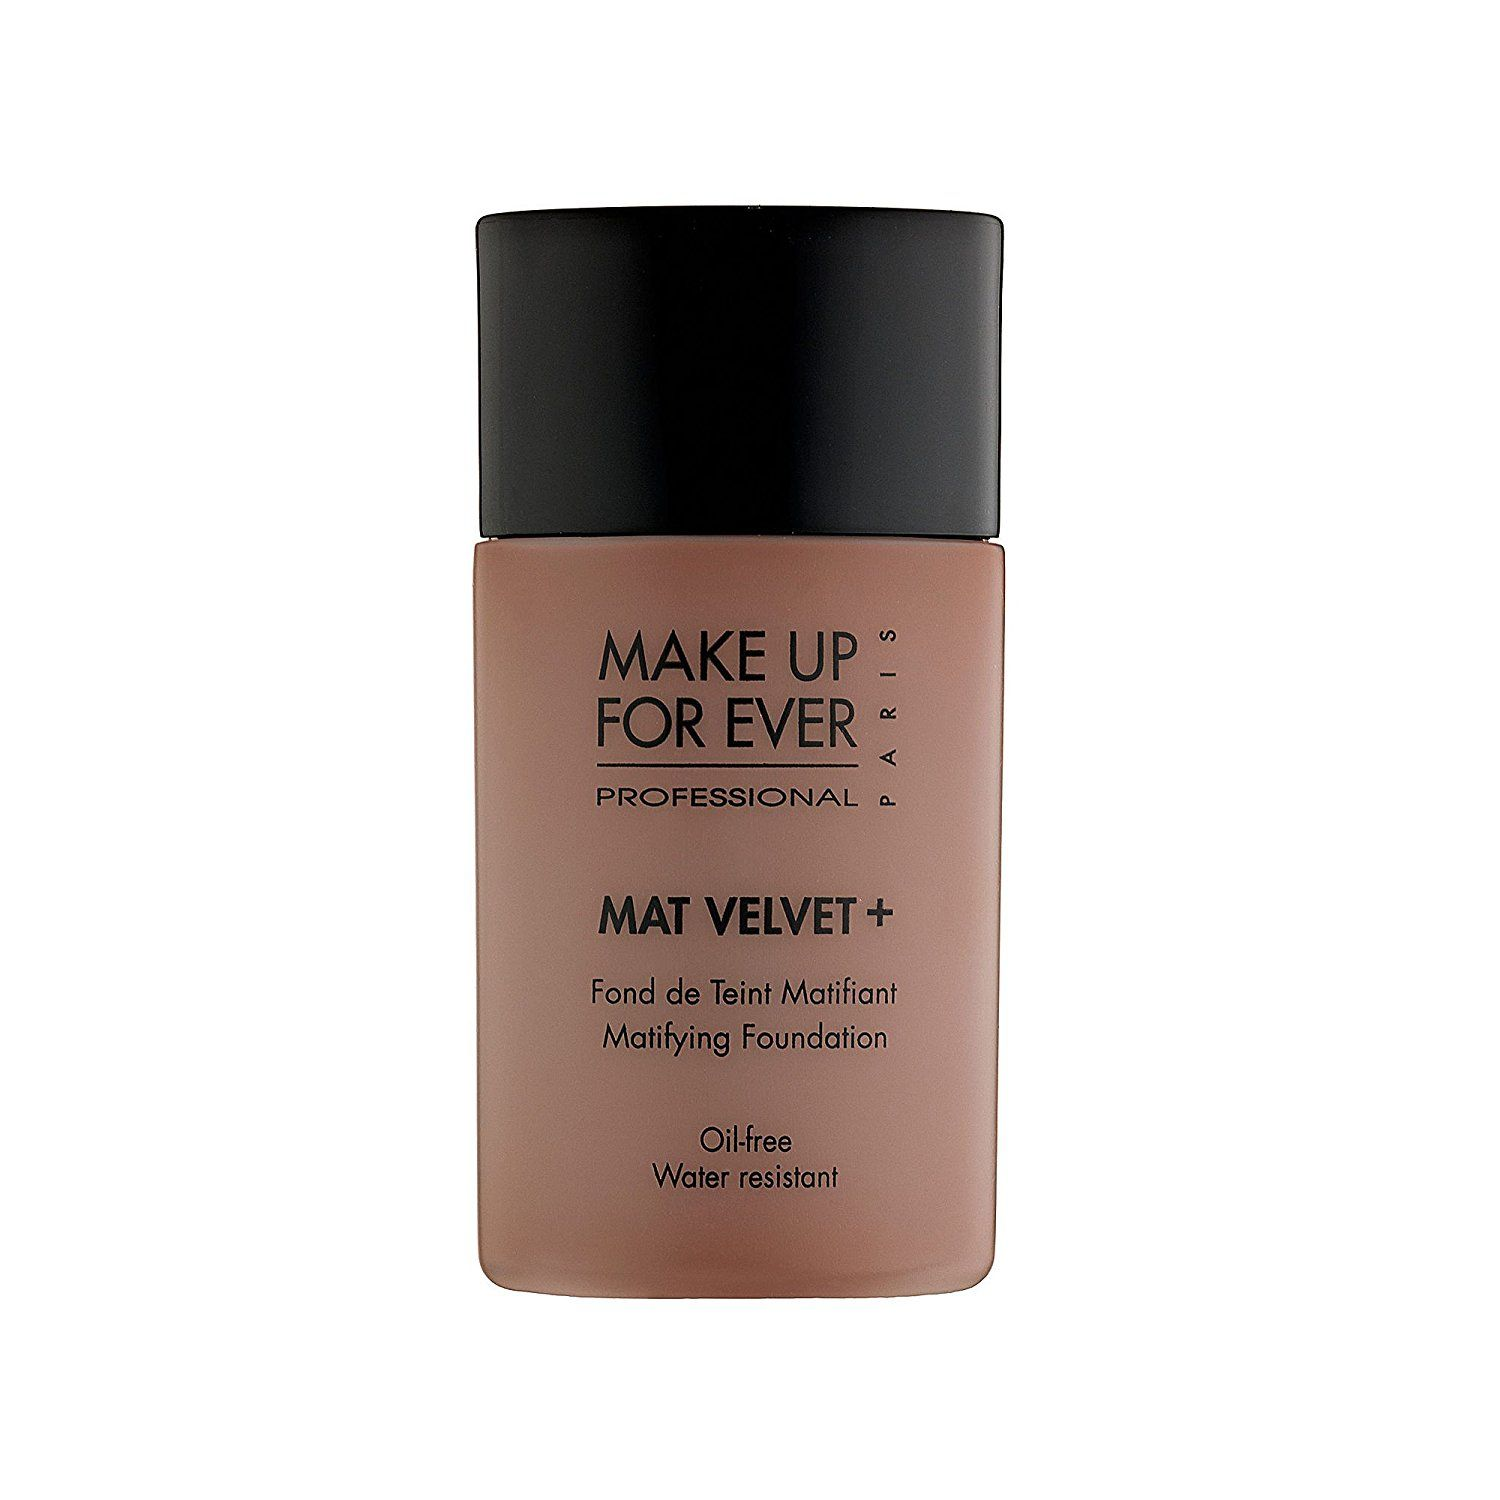 MAKE UP FOR EVER Mat Velvet   Matifying Foundation No. 75 - Coffee 1.01 oz by CoCo-Shop *** This is an Amazon Affiliate link. Be sure to check out this awesome product.